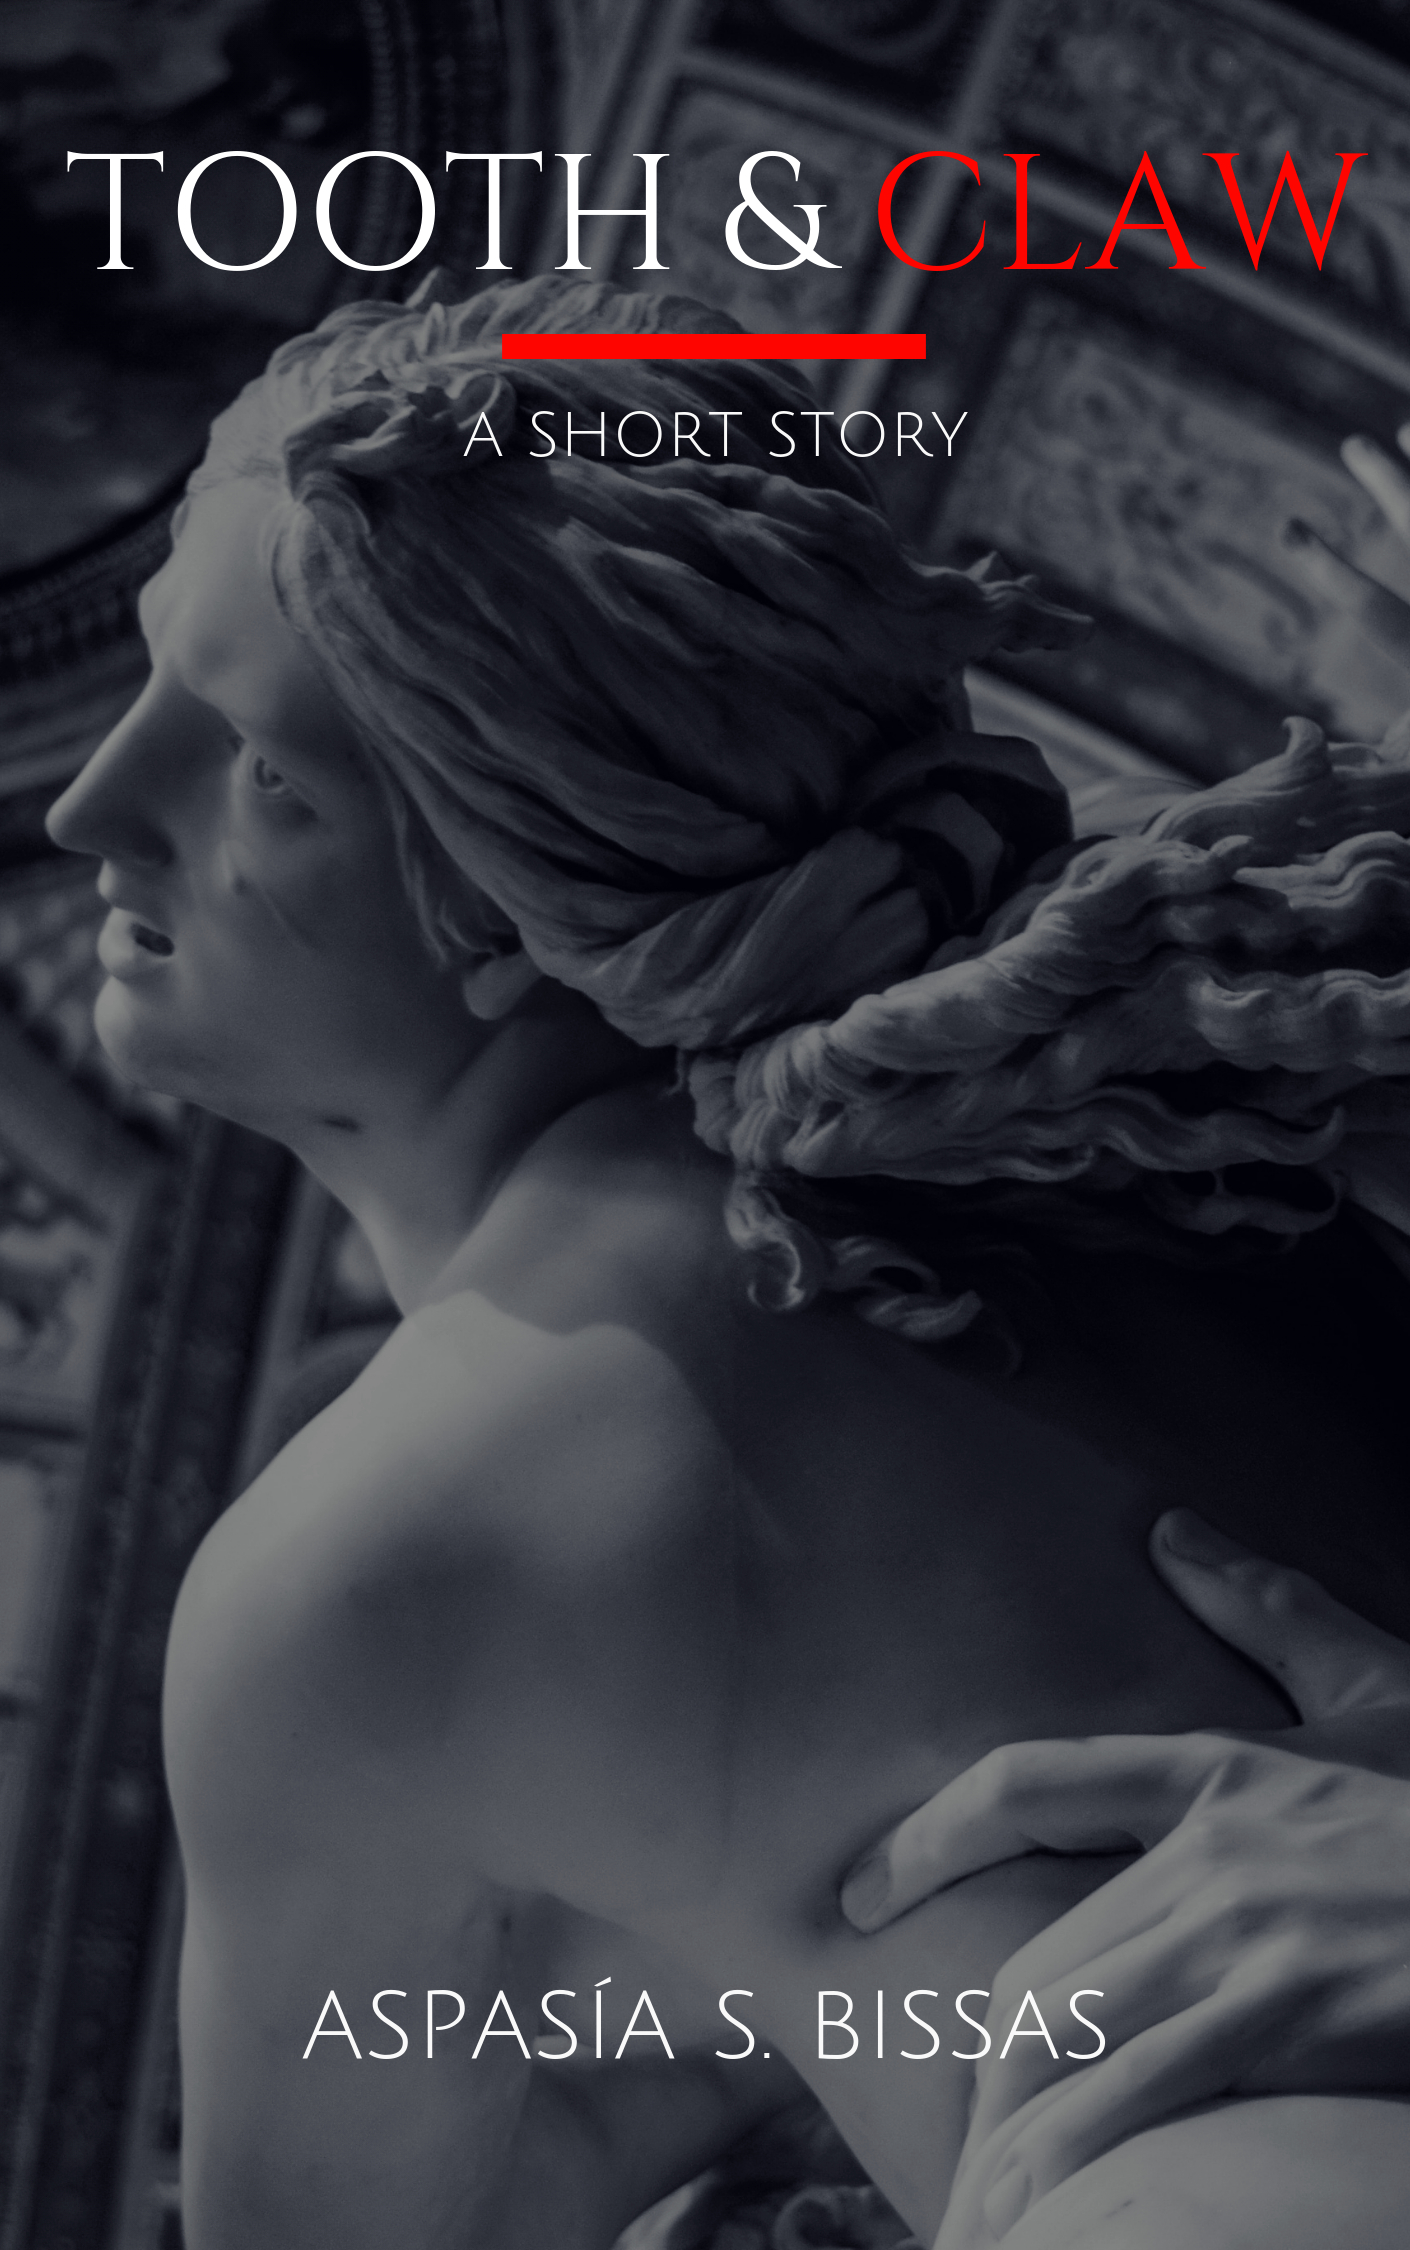 Tooth & Claw, free short story by Aspasia S. Bissas